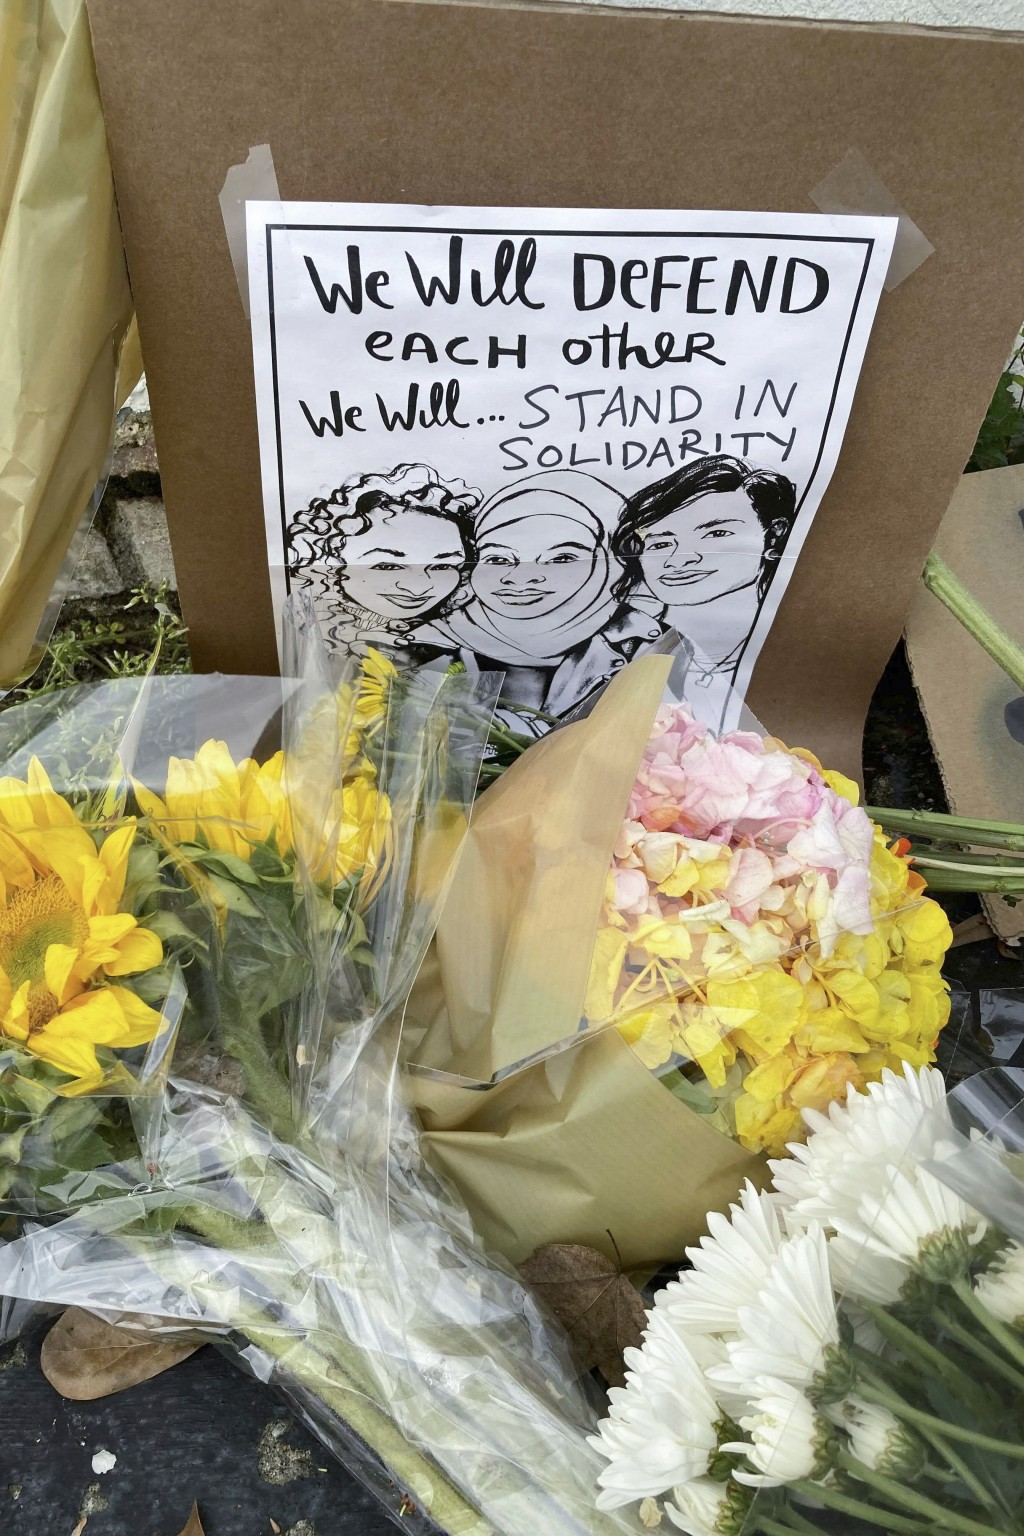 Flowers, candles and signs are displayed at a makeshift memorial on Friday, March 19, 2021, in Atlanta.  Robert Aaron Long, a white man, is accused of...